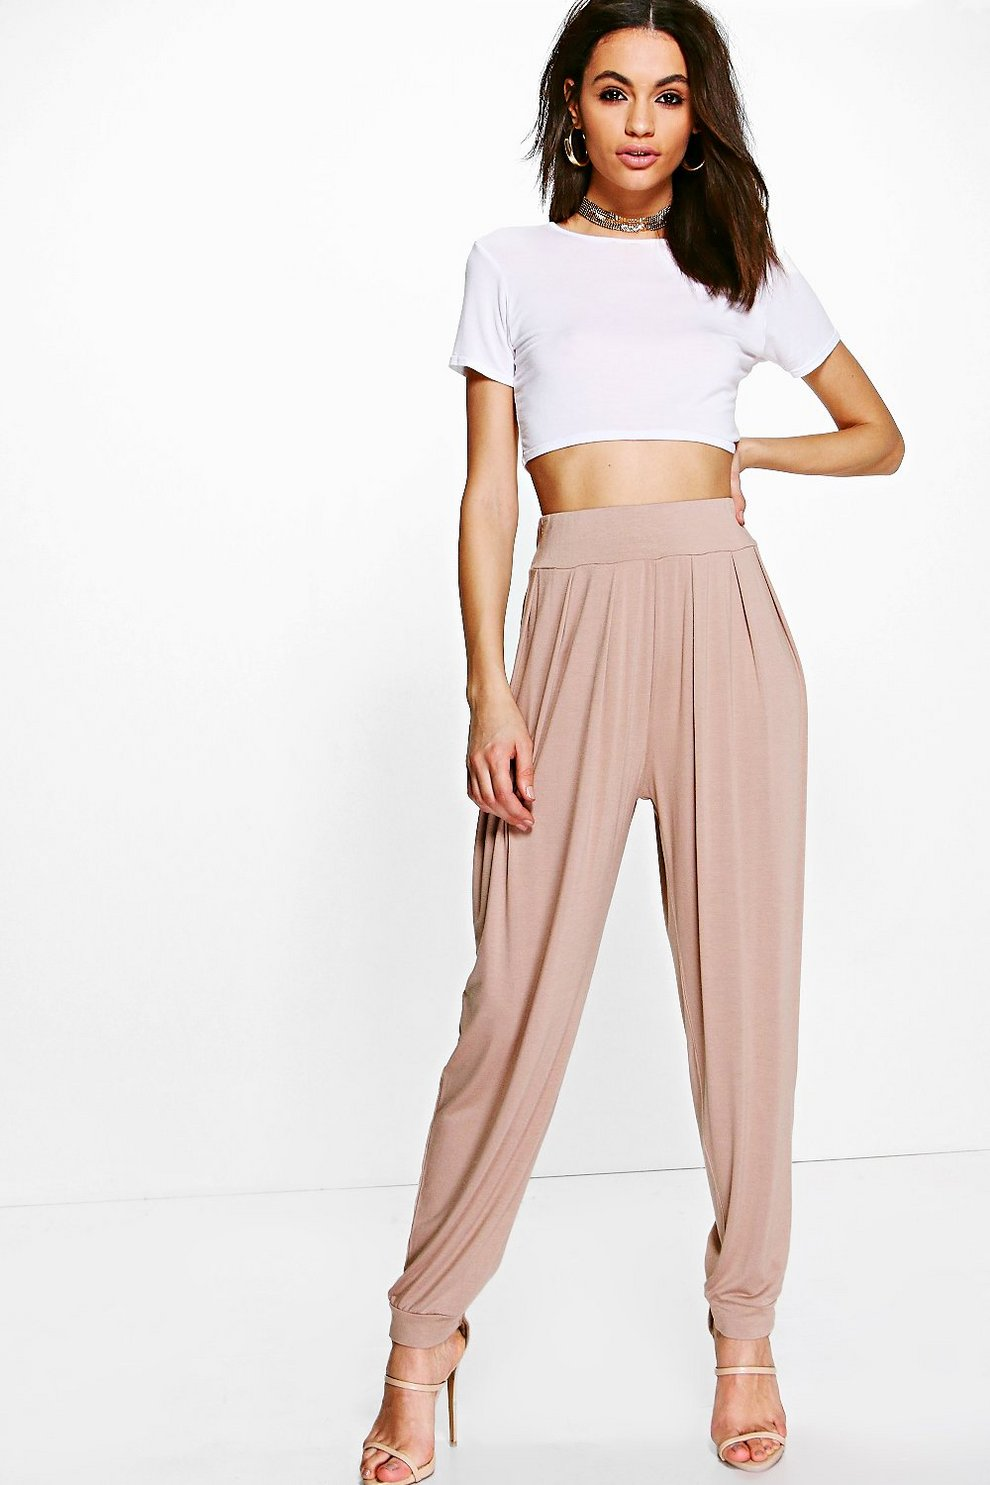 Buy Cheap Order Outlet Official Boohoo Pleat Front Jersey Hareem Trouser Free Shipping Footaction PPR0xspZ